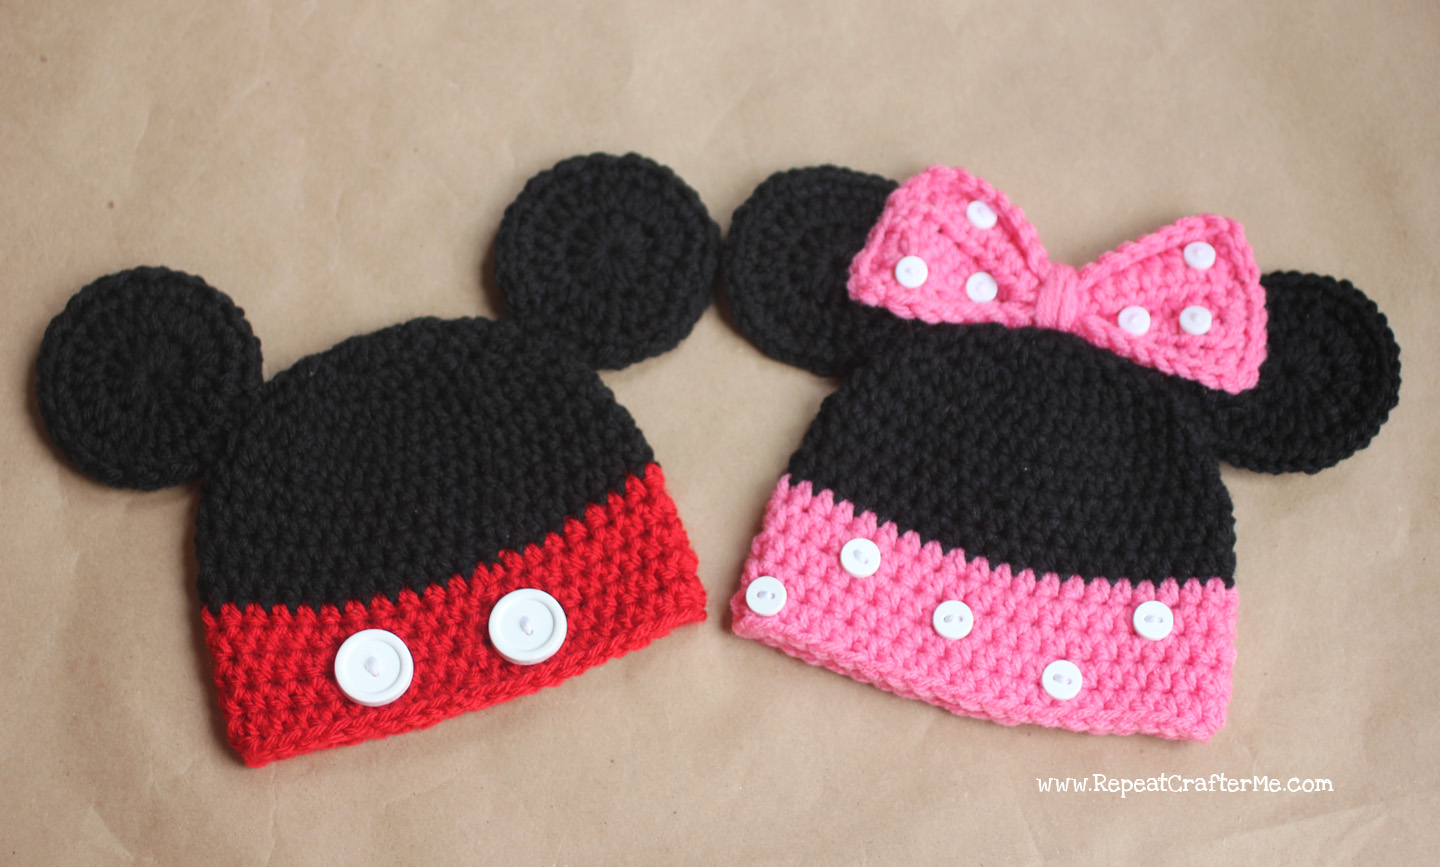 ... Mouse Crochet Hat Pattern this one is also by Repeat Crafter Me